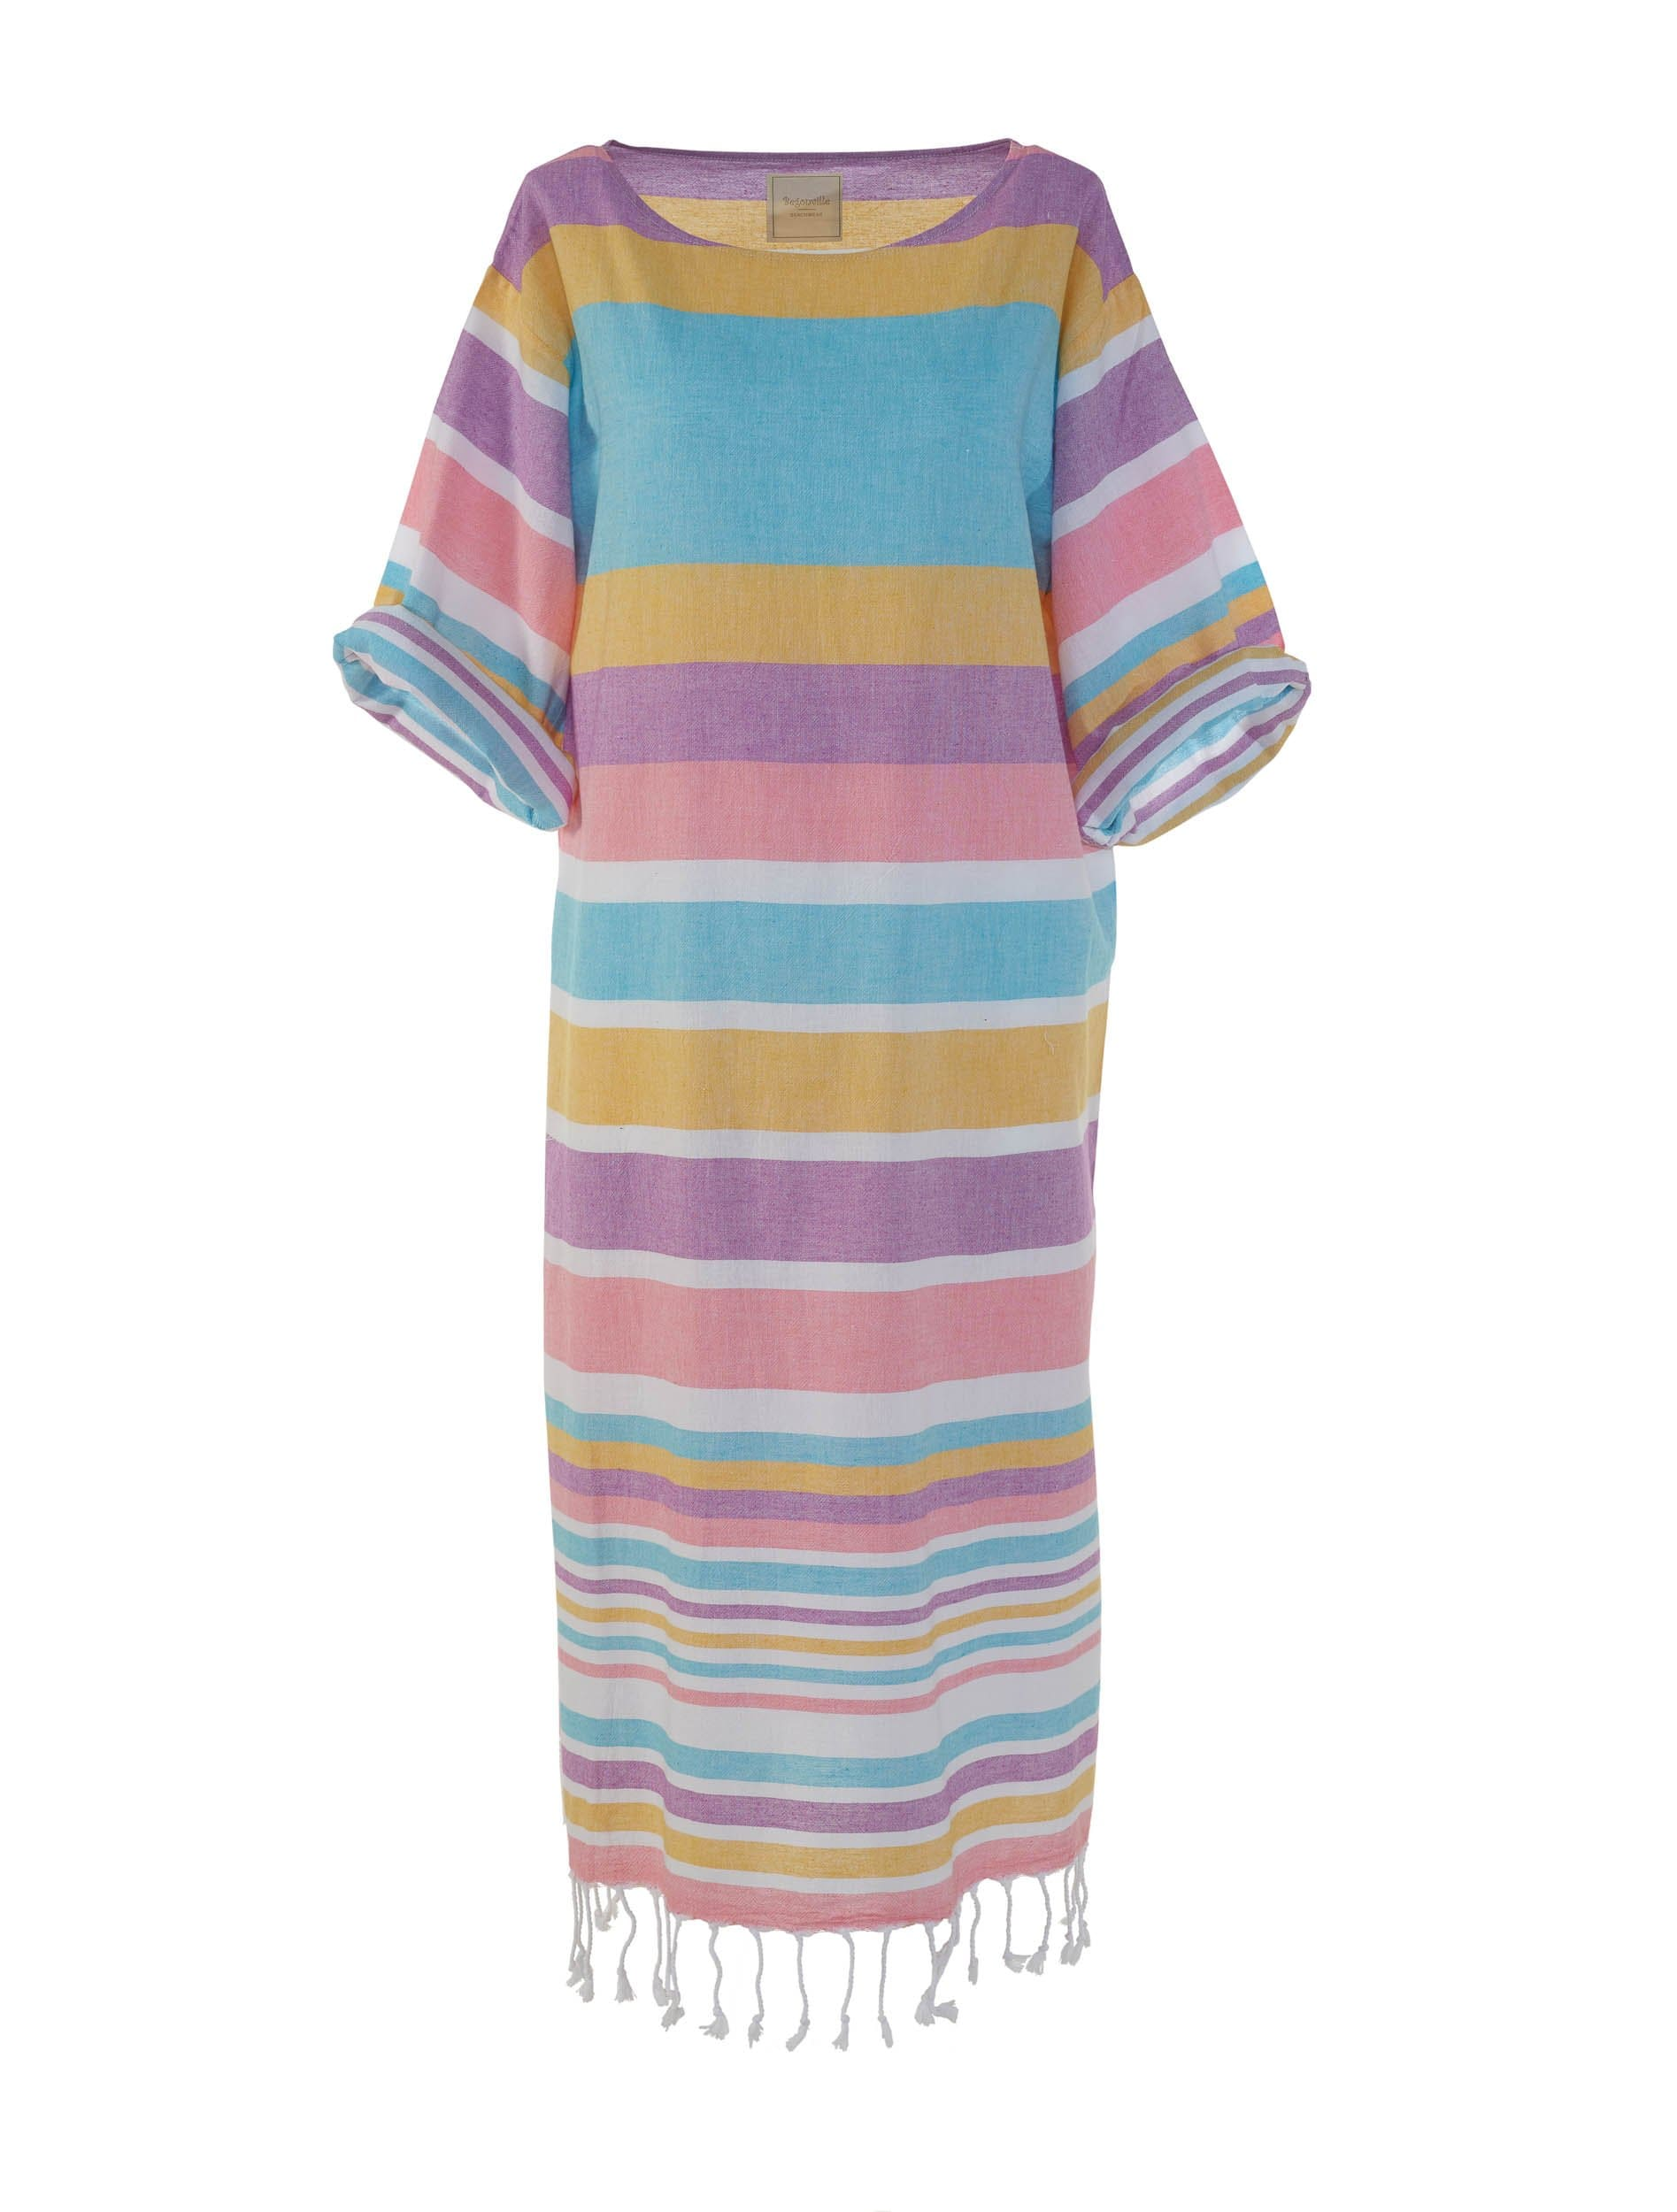 Begonville Maxi Dress Blake Cotton Maxi Dress Candy